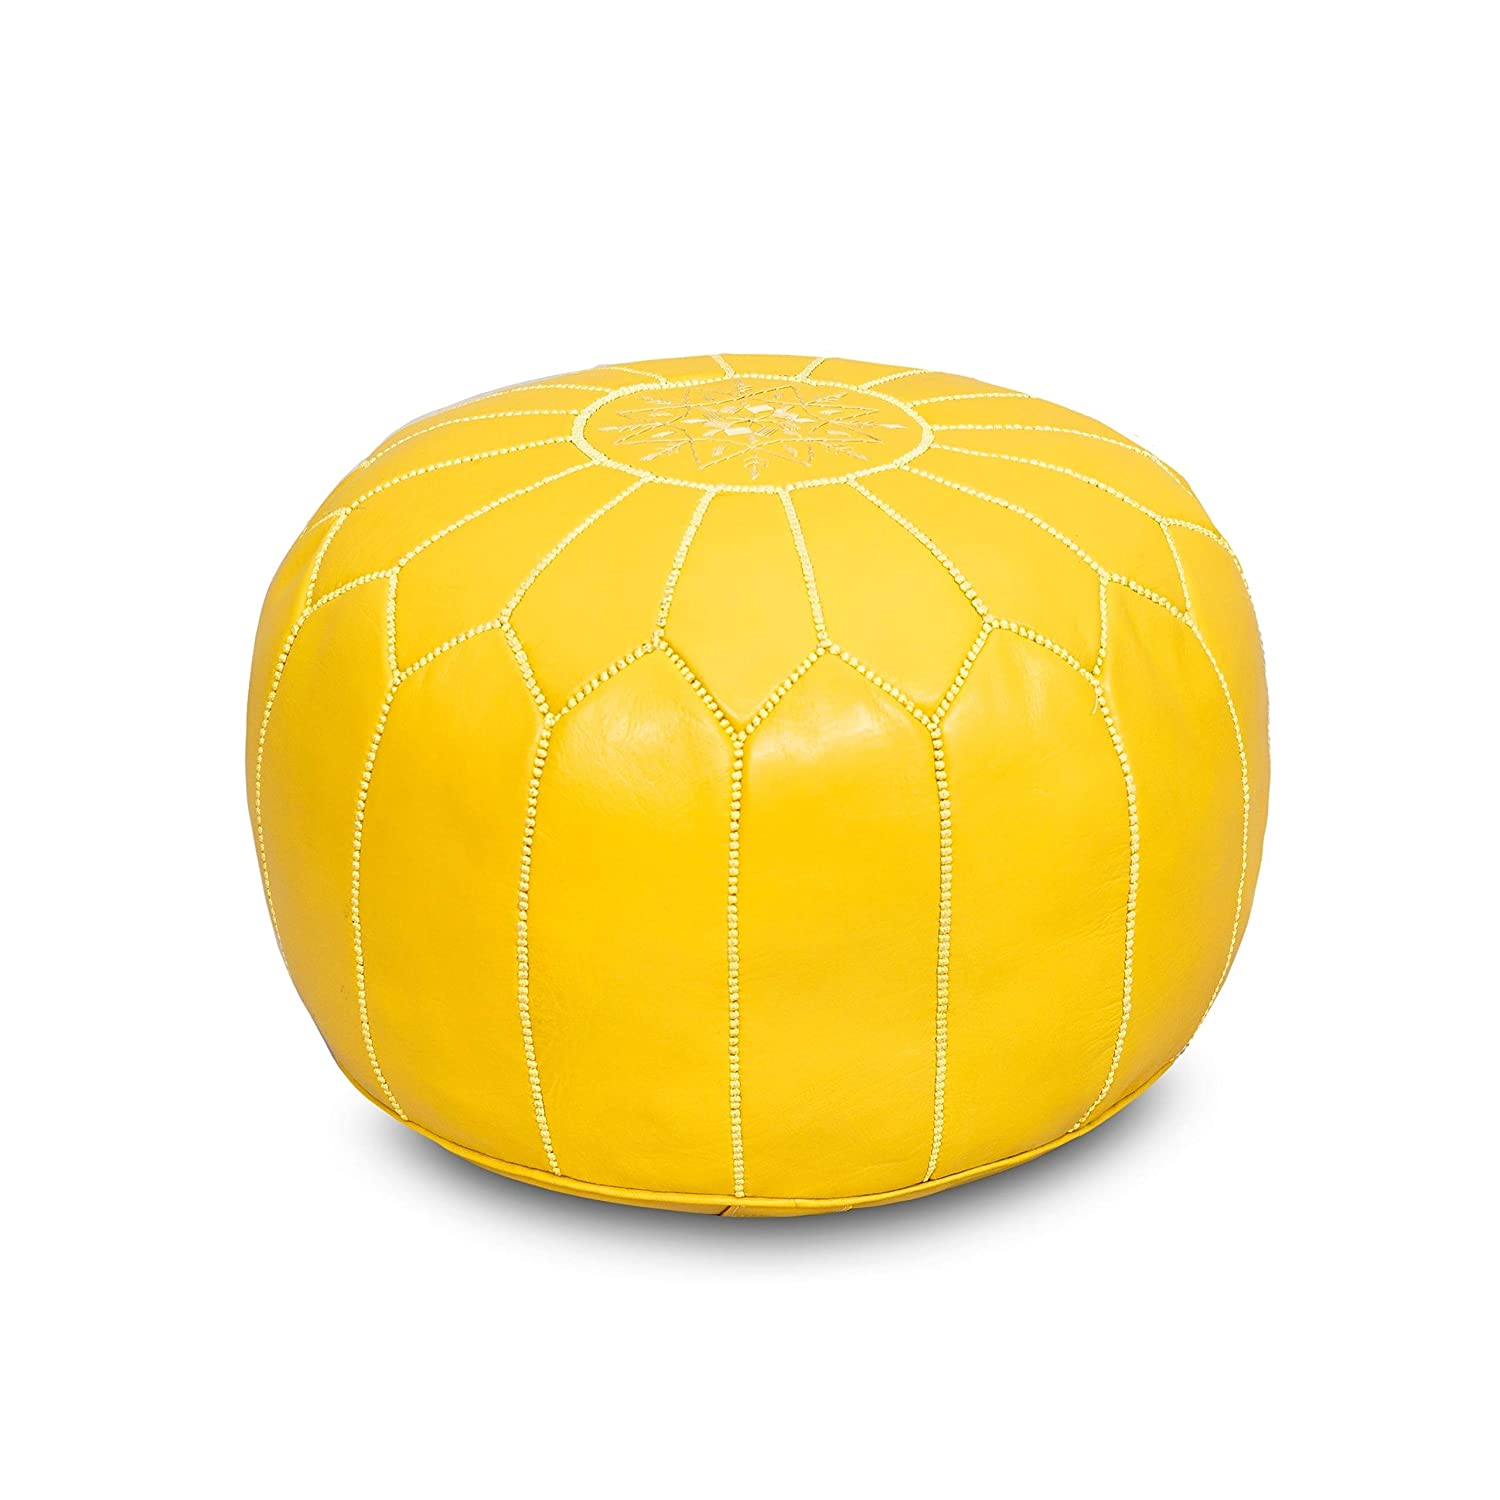 "Eco-Friendly Materials Yellow Authentic Goat Skin Leather Genuine Handmade Moroccan Leather Pouf Bedroom /& Living Room Round Ottoman 20/"" x 20/"" x 14/"" Moroccan Flair"